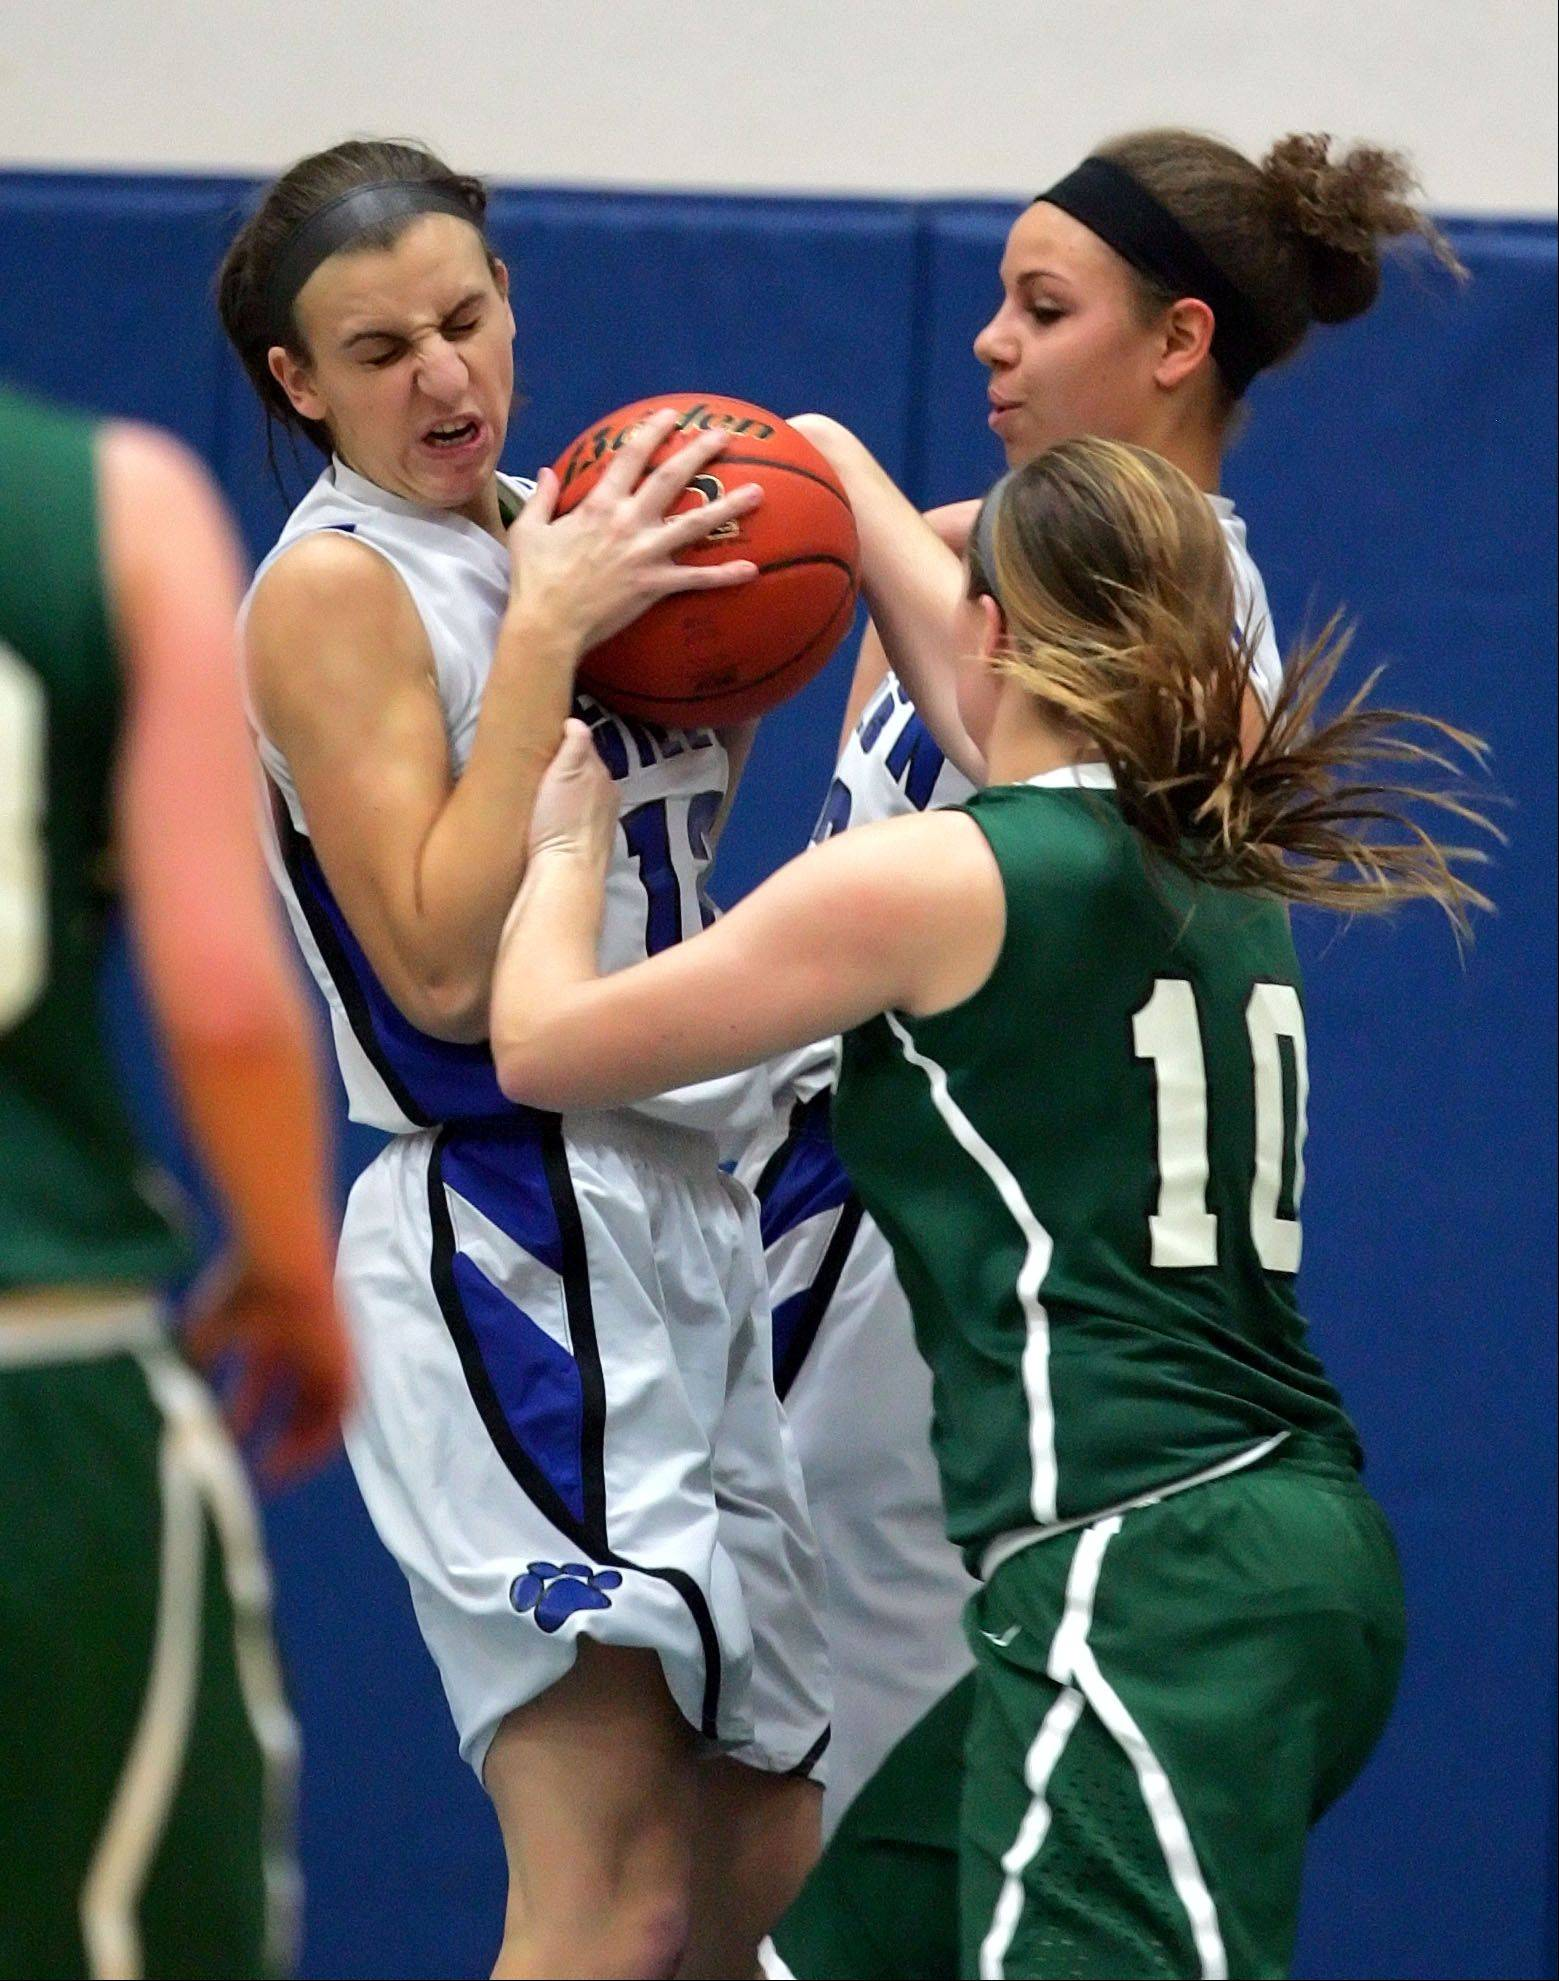 Vernon Hills' Alina Lehocky , left, and Lauren Webb battle for a rebound with Grayslake Central's Maddy Miller.